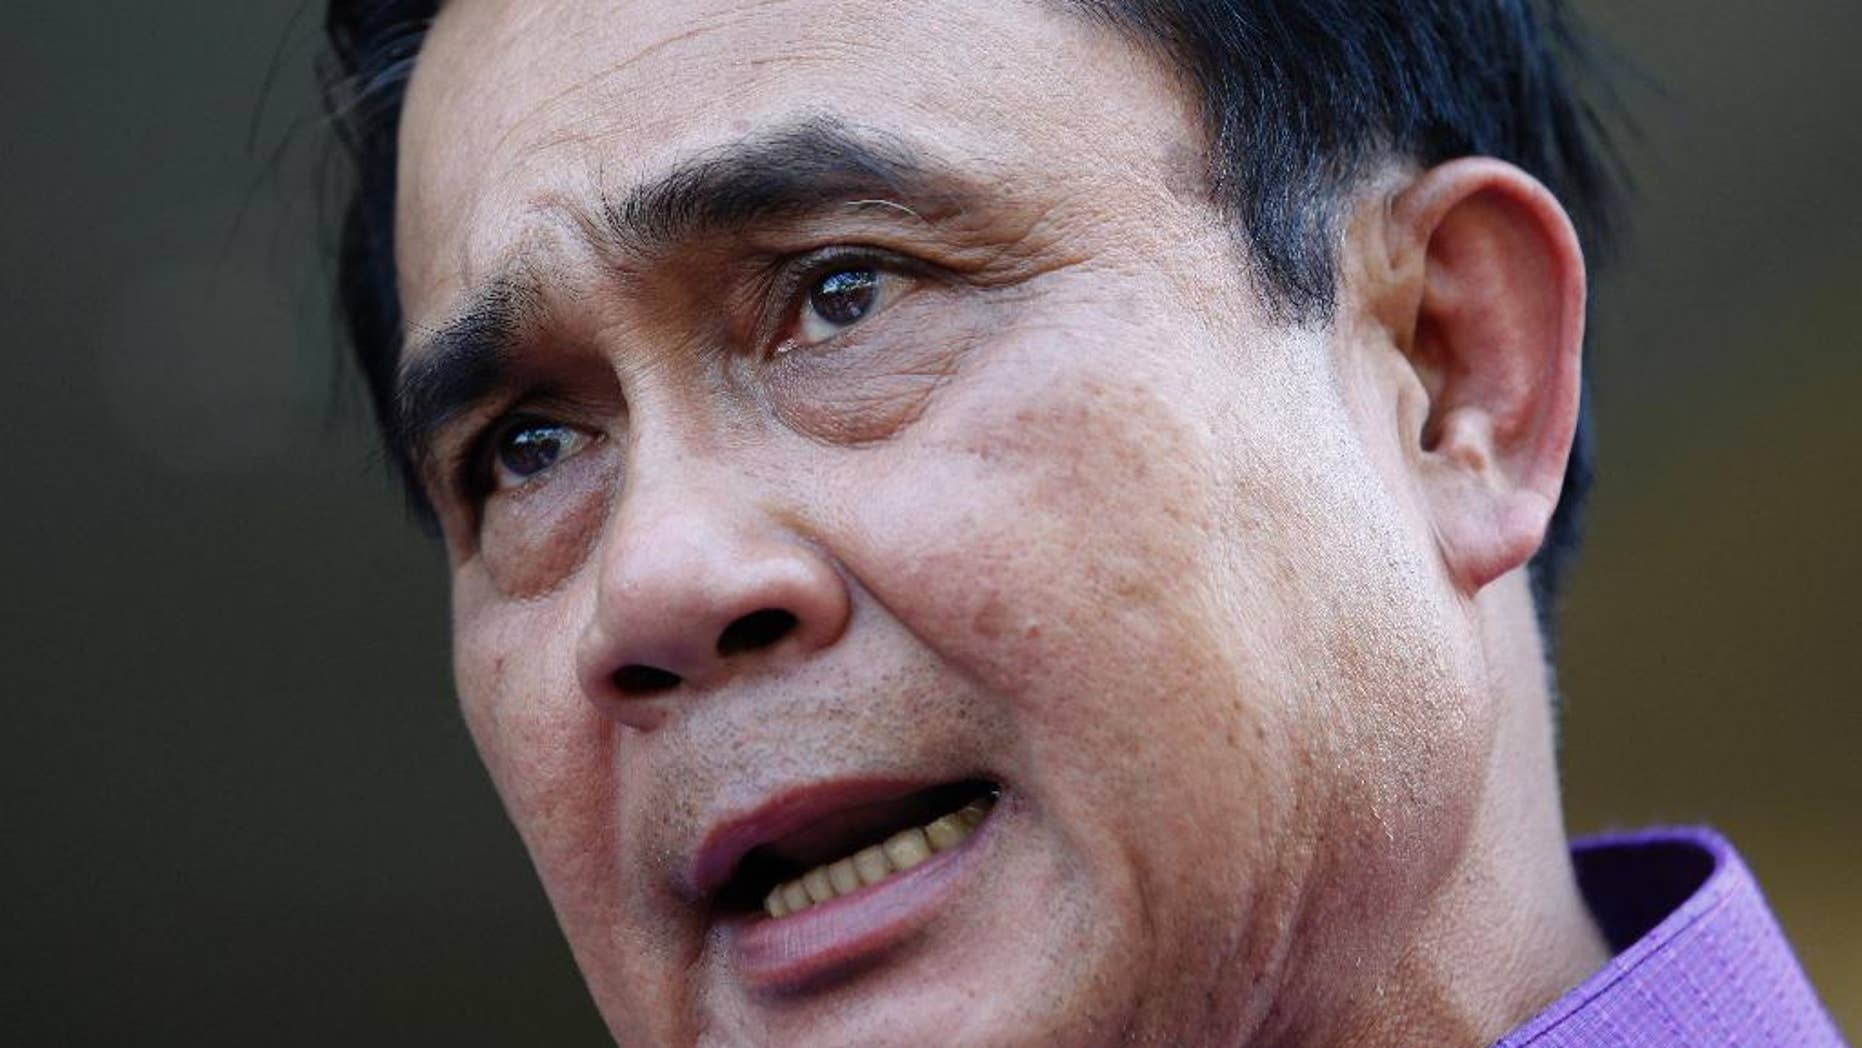 March 31, 2015: In this file photo, Thailand's Prime Minister Prayuth Chan-ocha speaks during a press conference at the government house in Bangkok, Thailand.